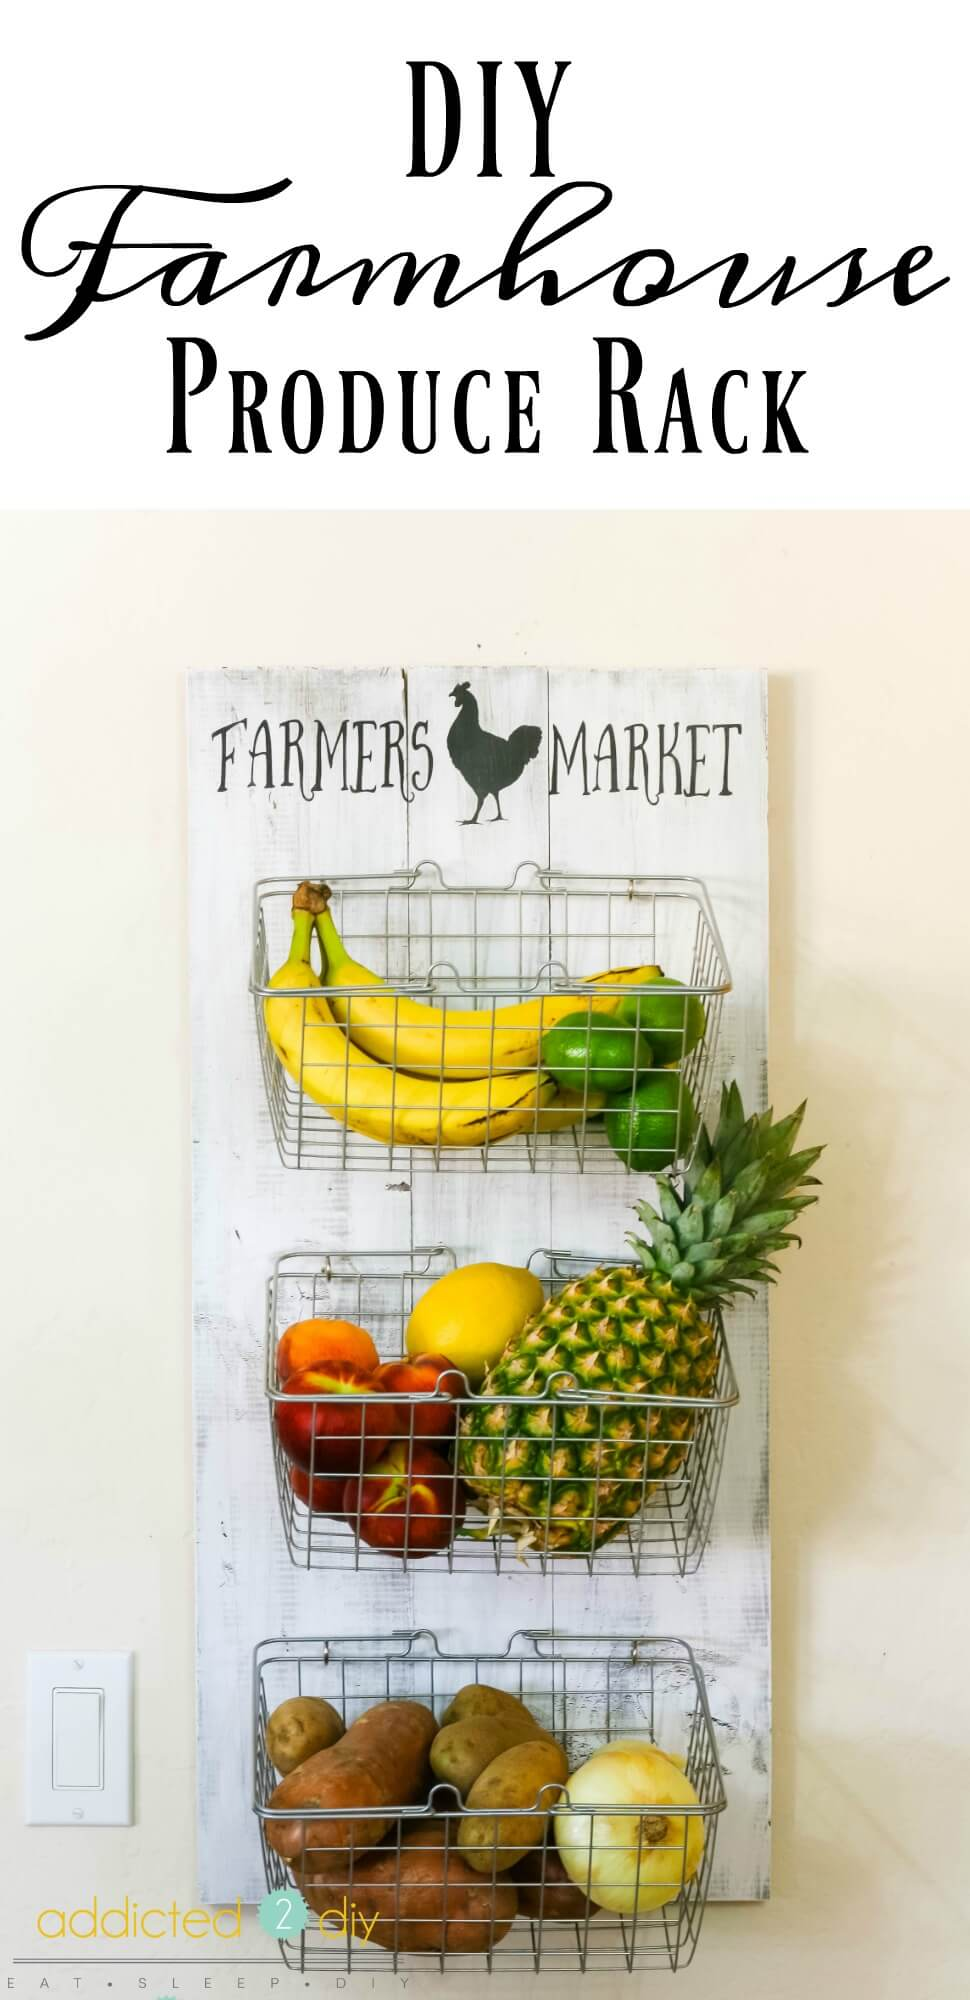 2 Hang Fruit And Veggie Baskets On A Cute Board